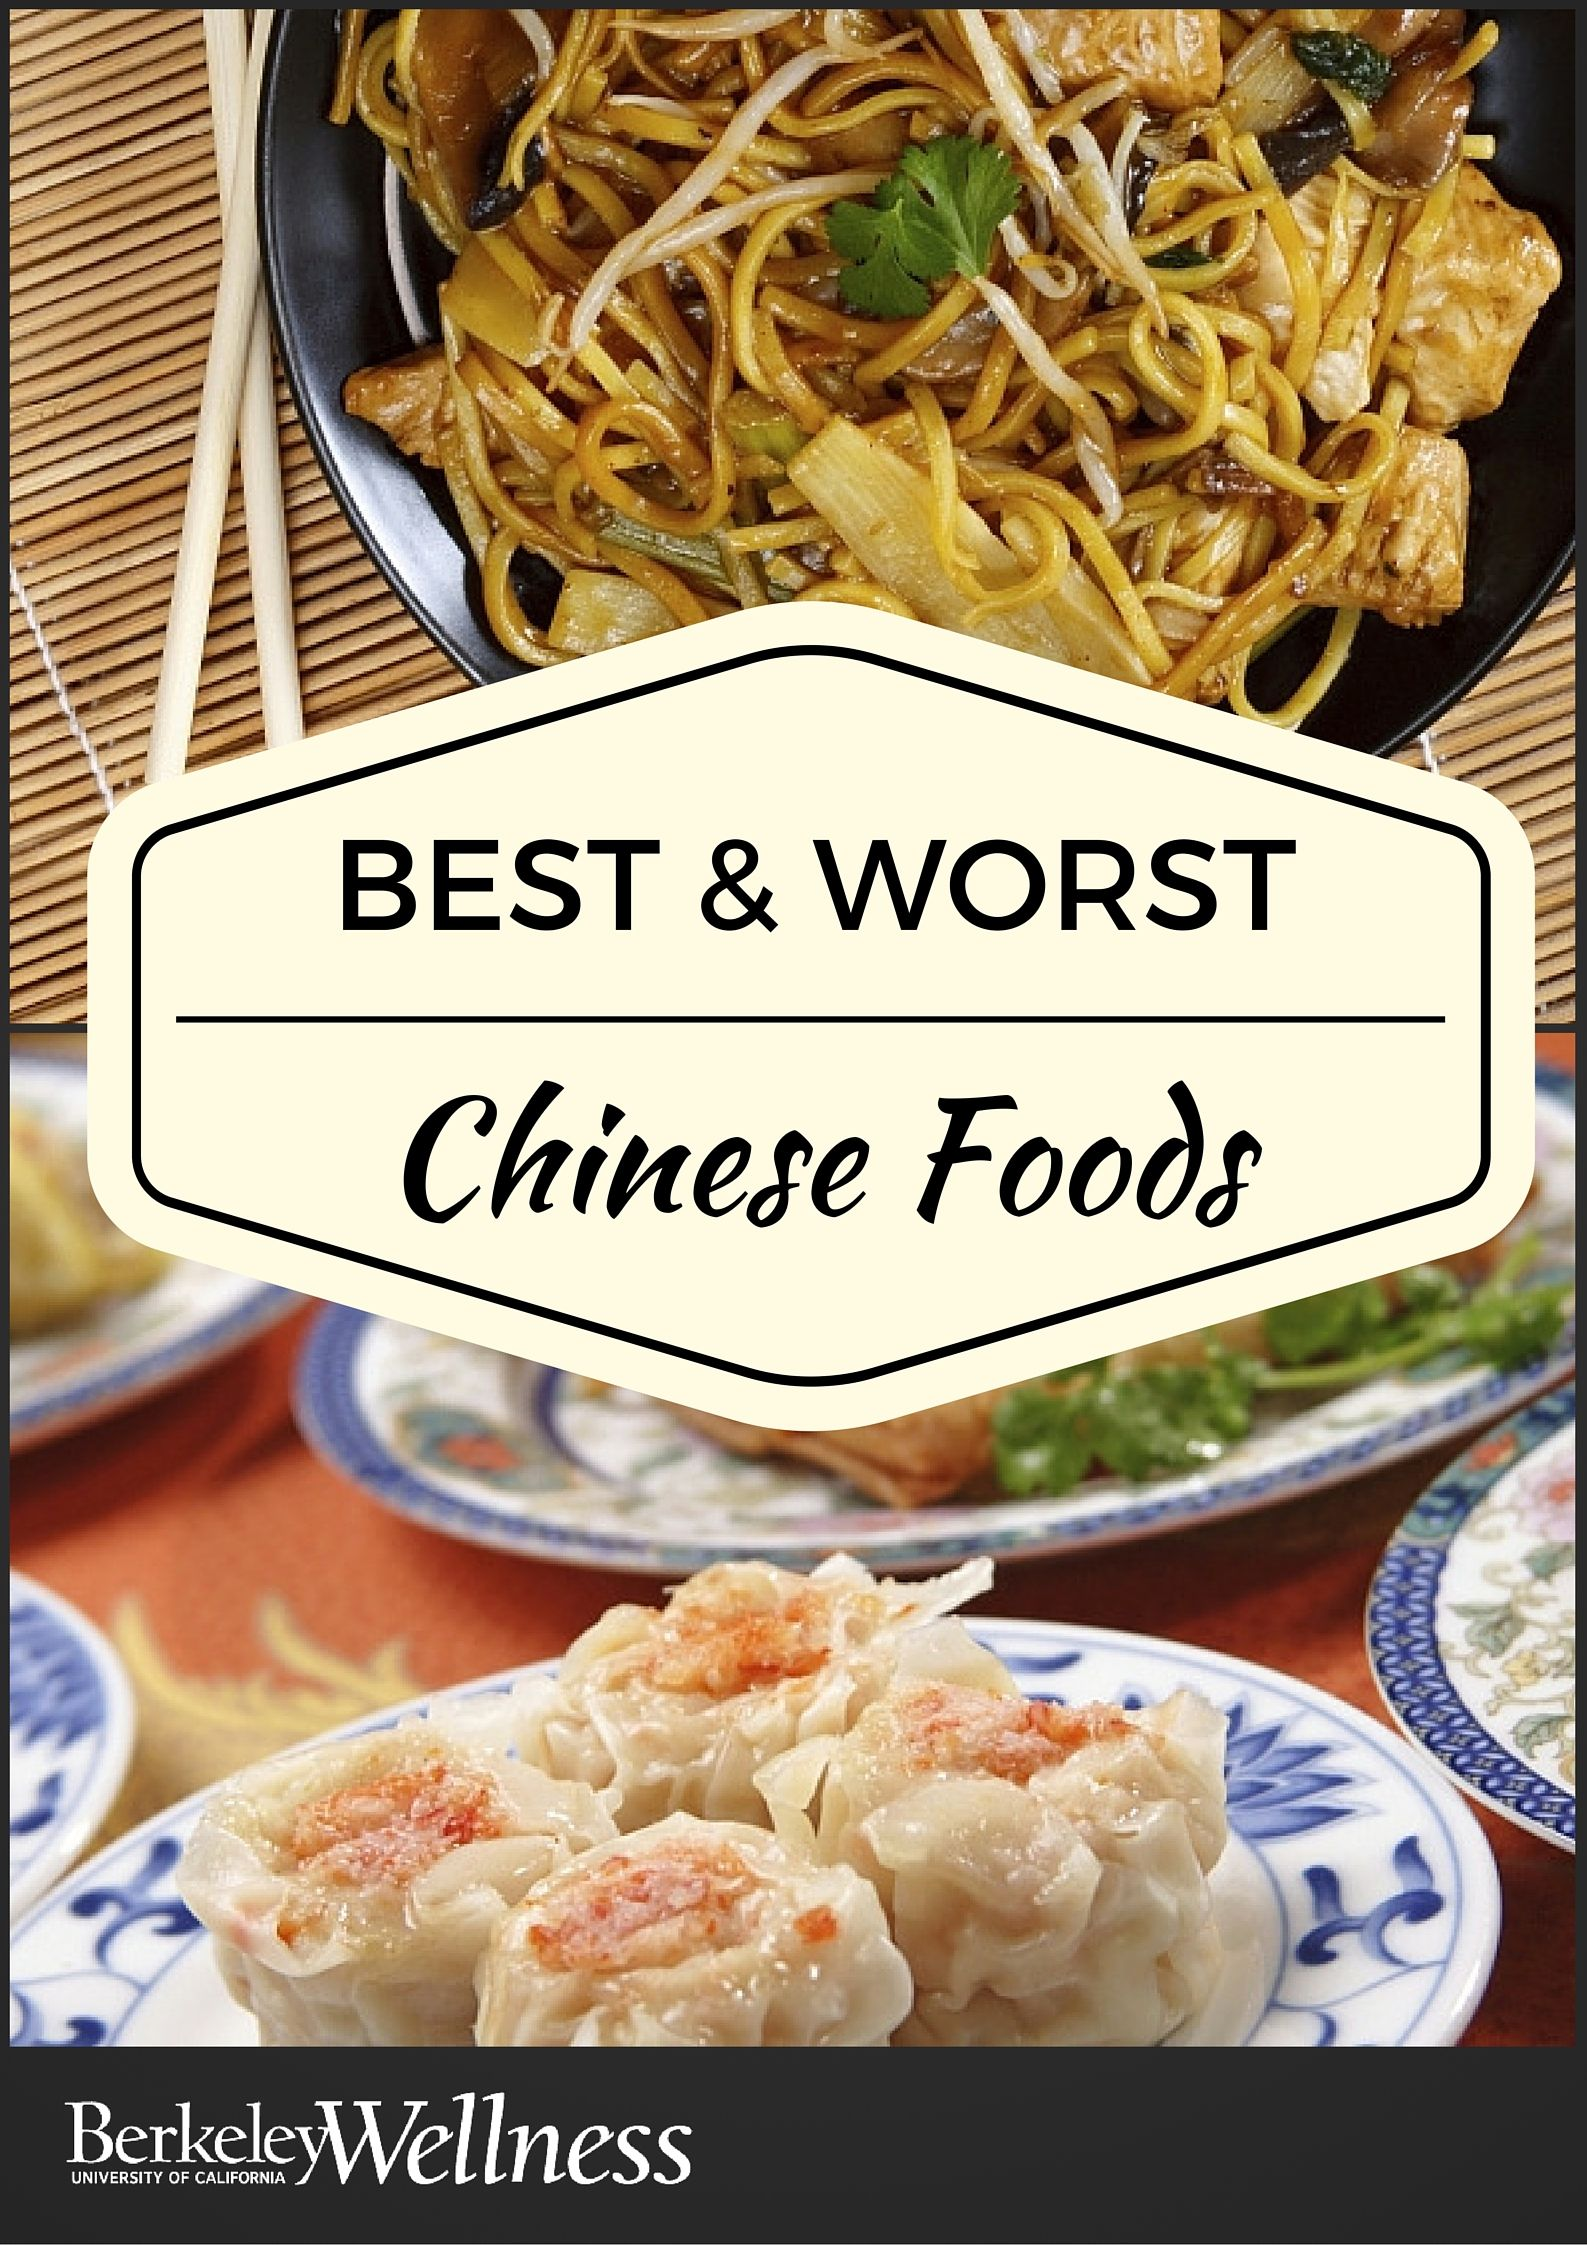 Chinese Food Is Very Popular For Dining Out Or Ordering In But Not All Chinese Cuisine Is Healthy This Gui With Images Healthy Chinese Recipes Order Chinese Food Food